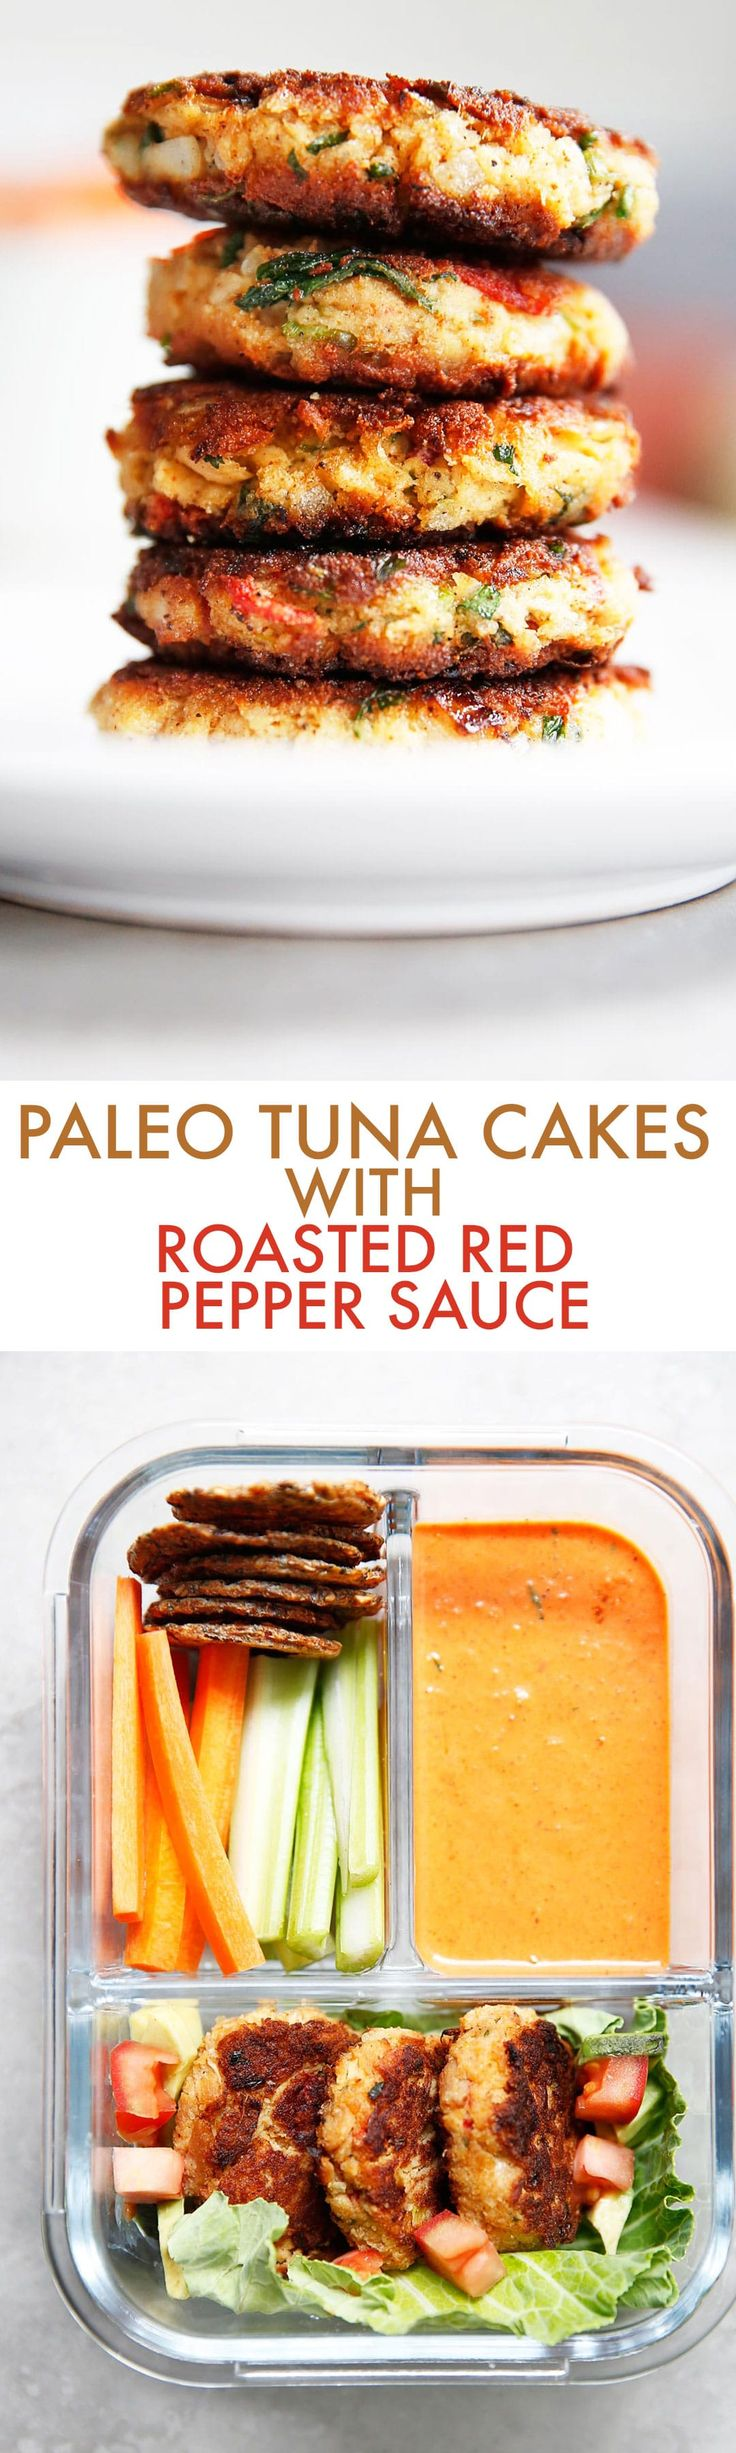 Looking for an easy, low carb lunch to meal prep? These Paleo Tuna Cakes with Roasted Red Pepper Sauce are flavorful, easy to make, and perfect for meal prep lunches all week long. Everybody will love thistuna cakes recipe, and they are made gluten-free, grain-free, low carb, and paleo-friendly!